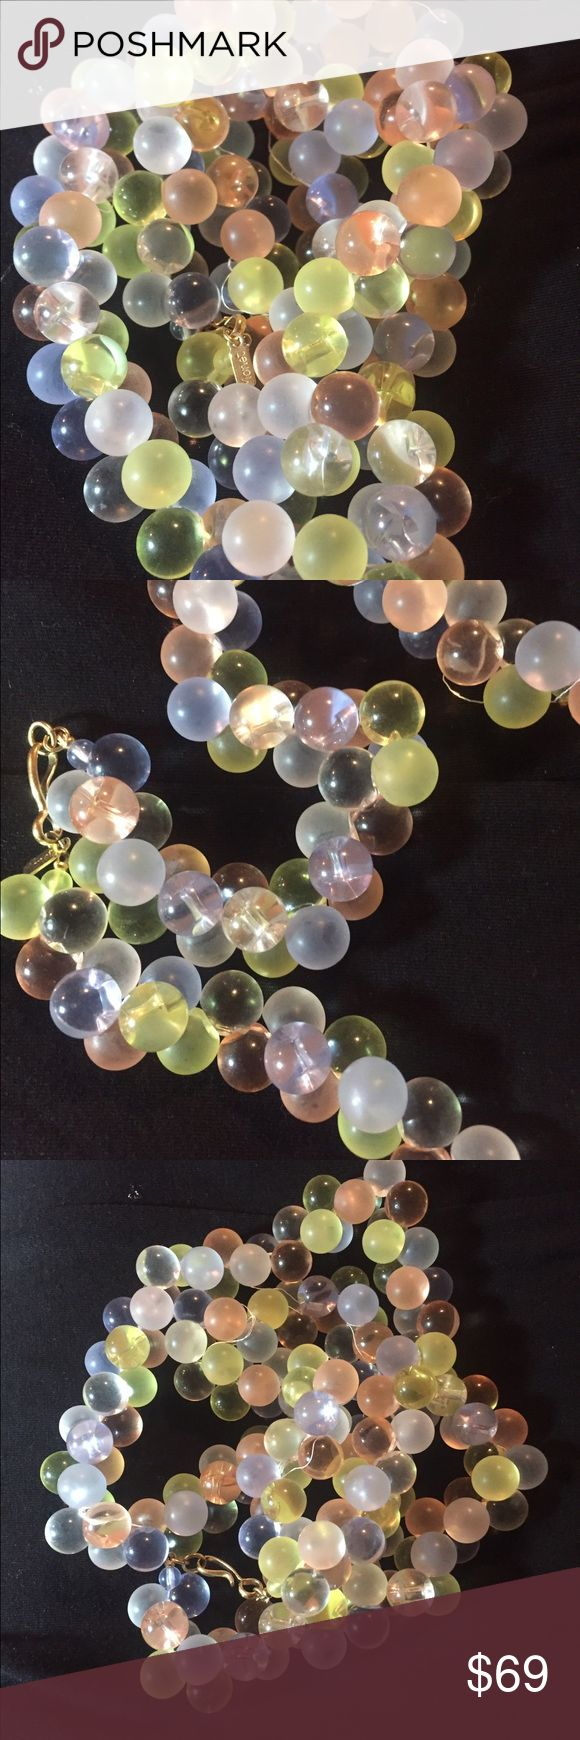 "VTG Runway Monet wisteria pastel bubble19"" necklac This 19"" pastel dense lucite beaded money necklace is beautiful! It definitely makes a statement!! It is a fun piece and can be worn for many different occasions!! monet Jewelry Necklaces"